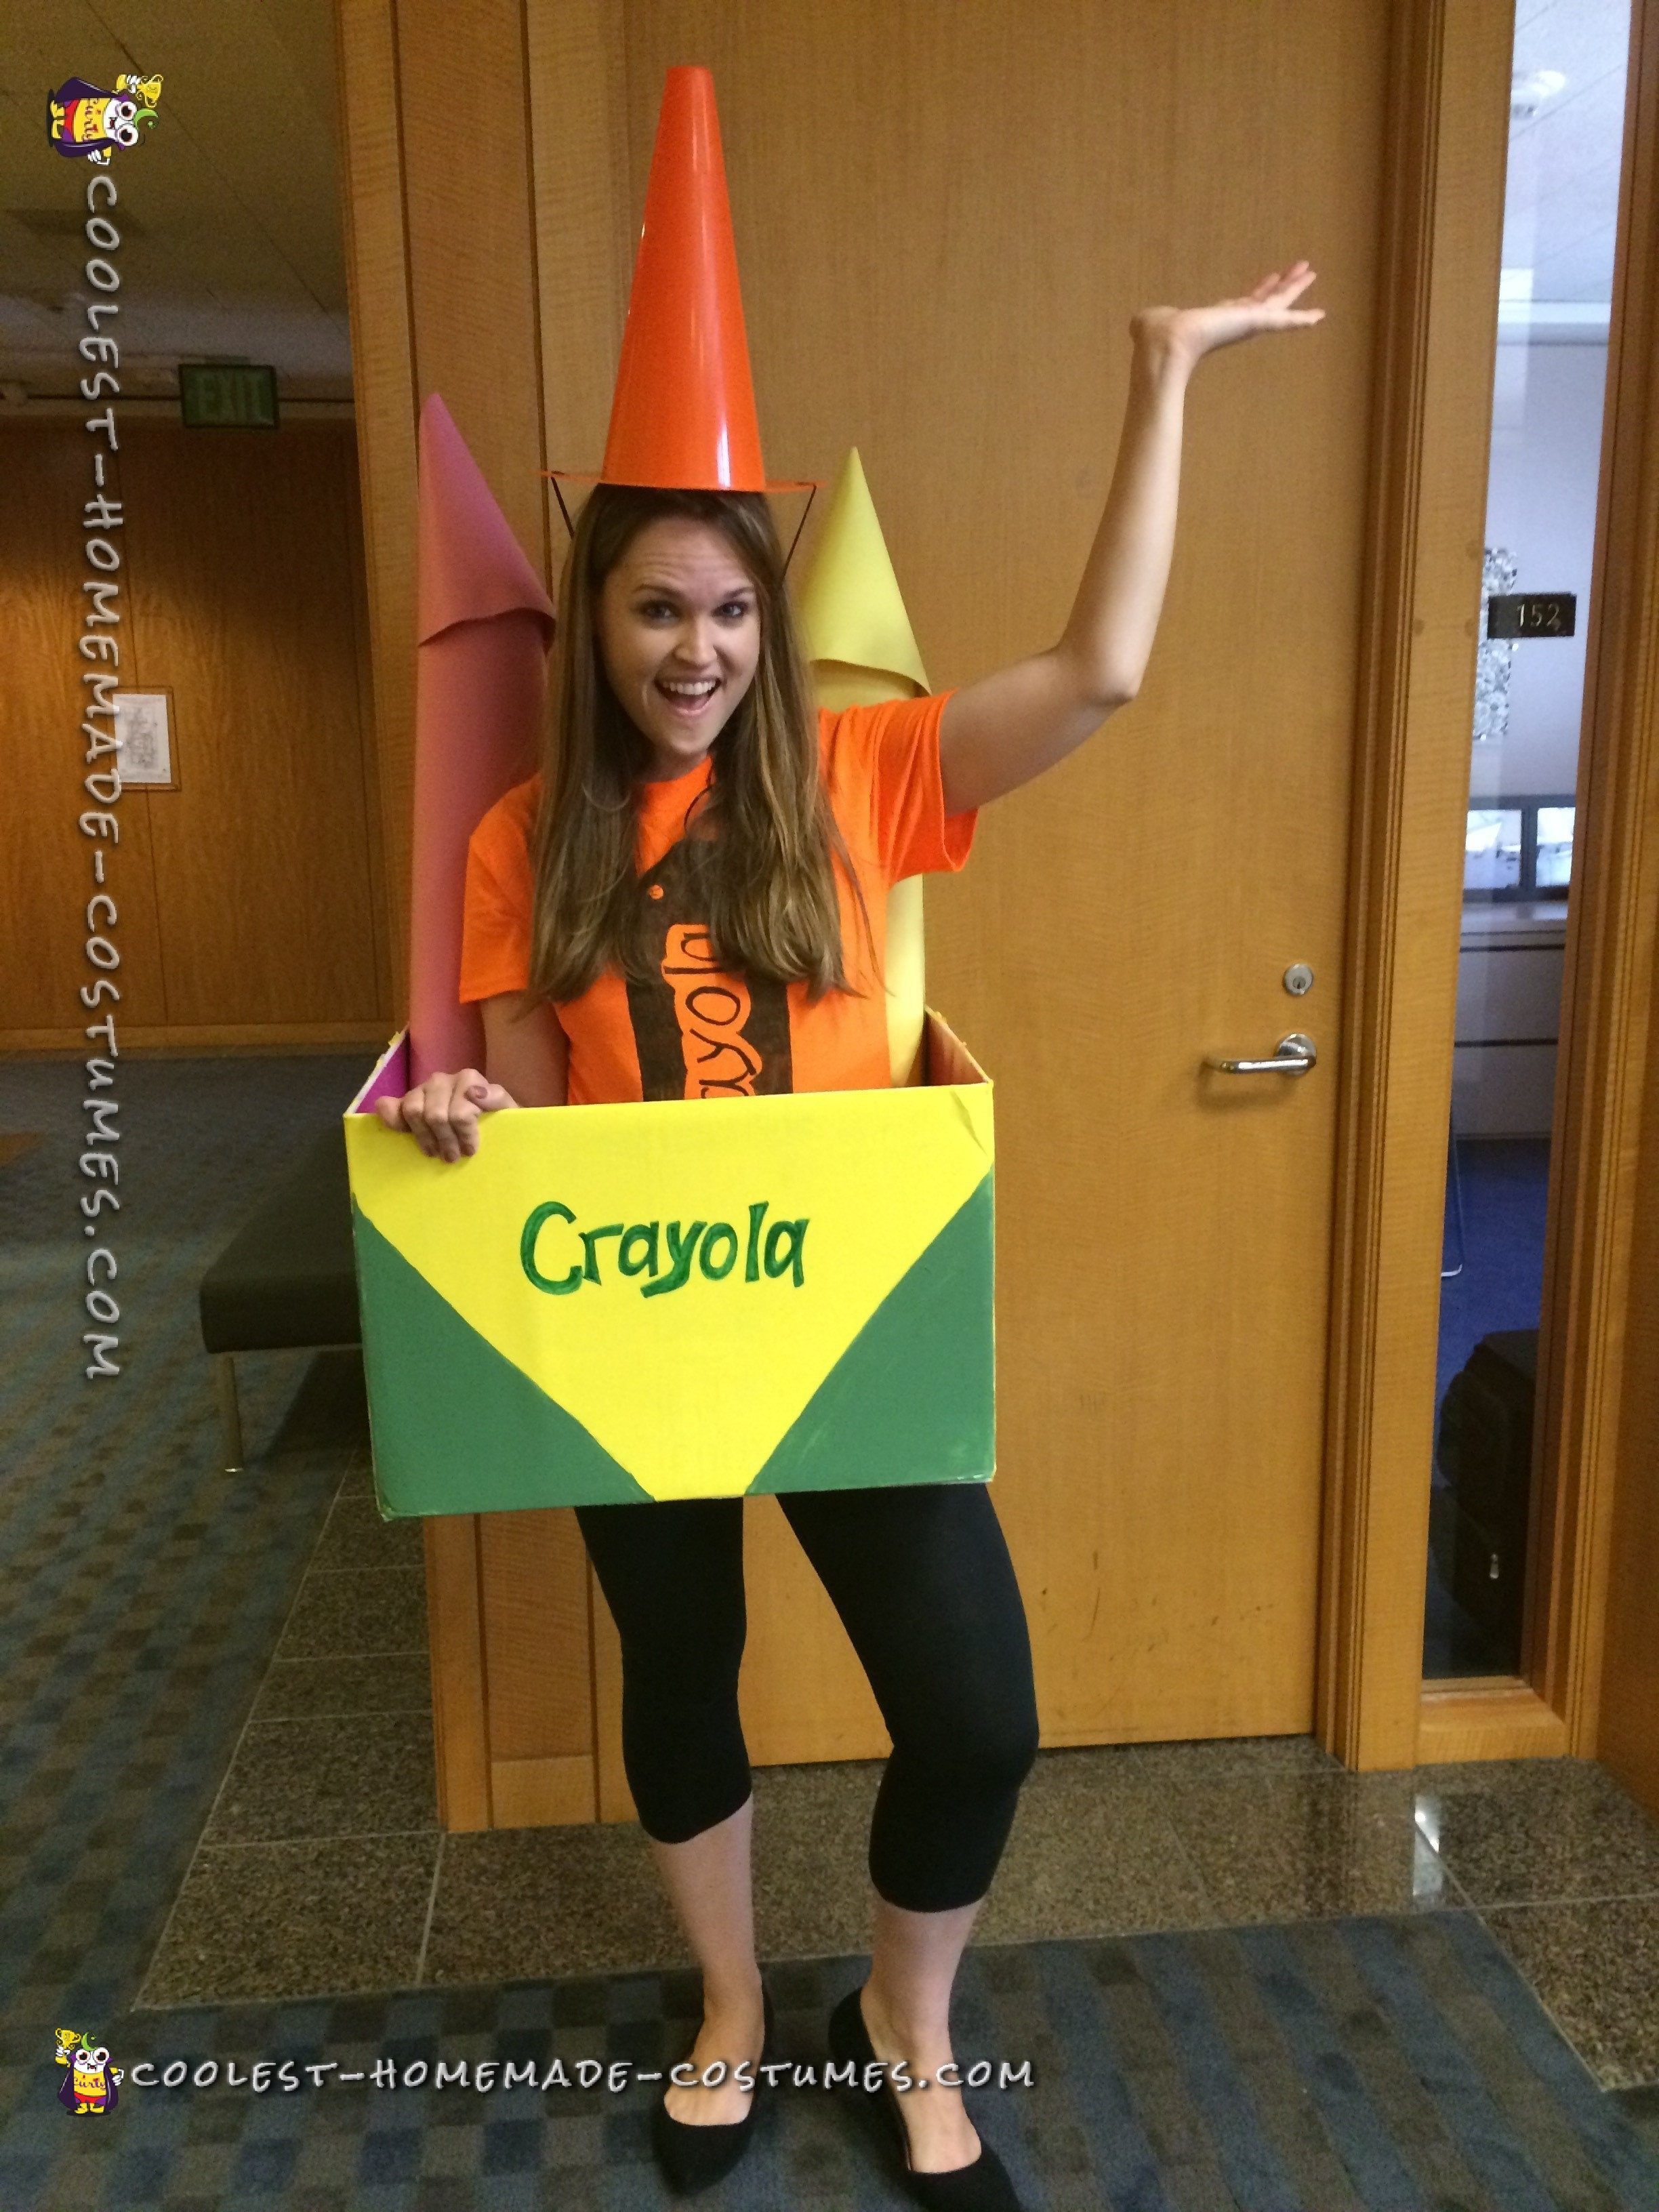 cool out of the box homemade crayon costume idea